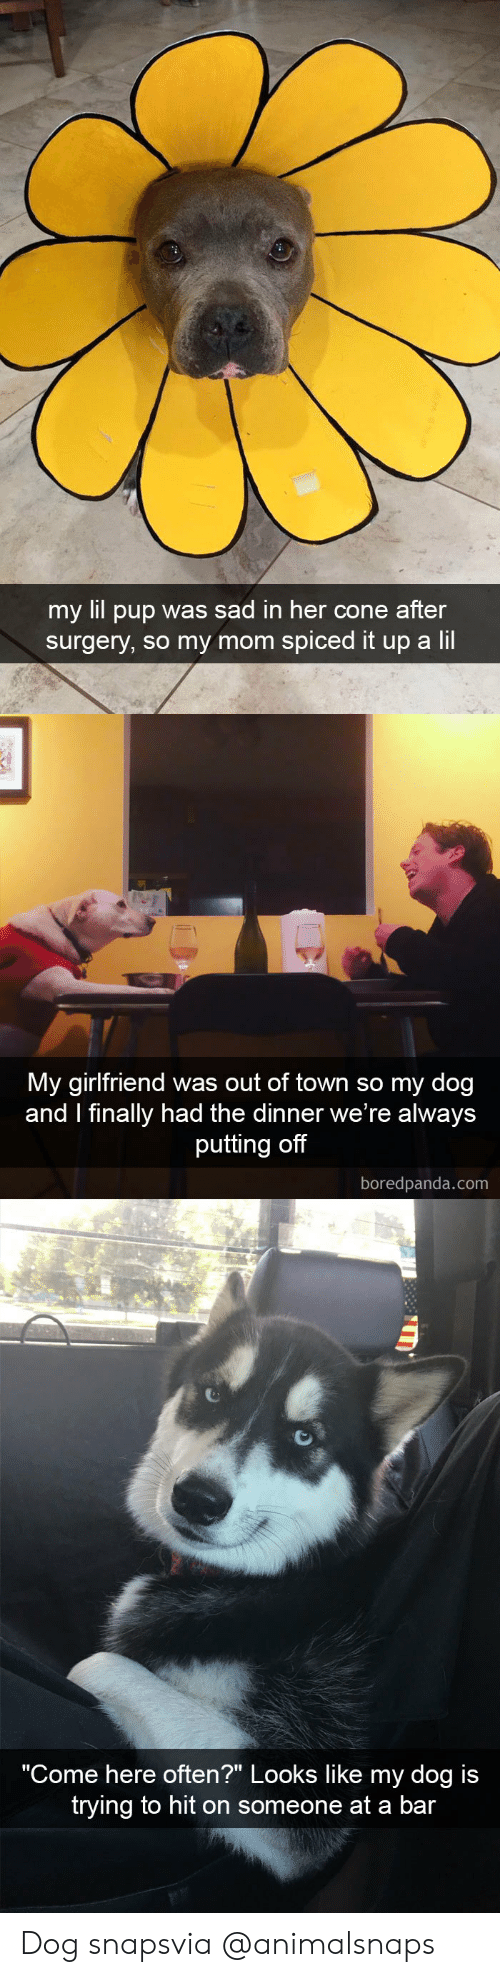 """Target, Tumblr, and Http: my lil pup was sad in her cone after  surgery, so my mom spiced it up a lii   My girlfriend was out of town so my dog  and I finally had the dinner we re always  putting off  boredpanda.com   """"Come here often?"""" Looks like my dog is  trying to hit on someone at a bar Dog snapsvia @animalsnaps"""